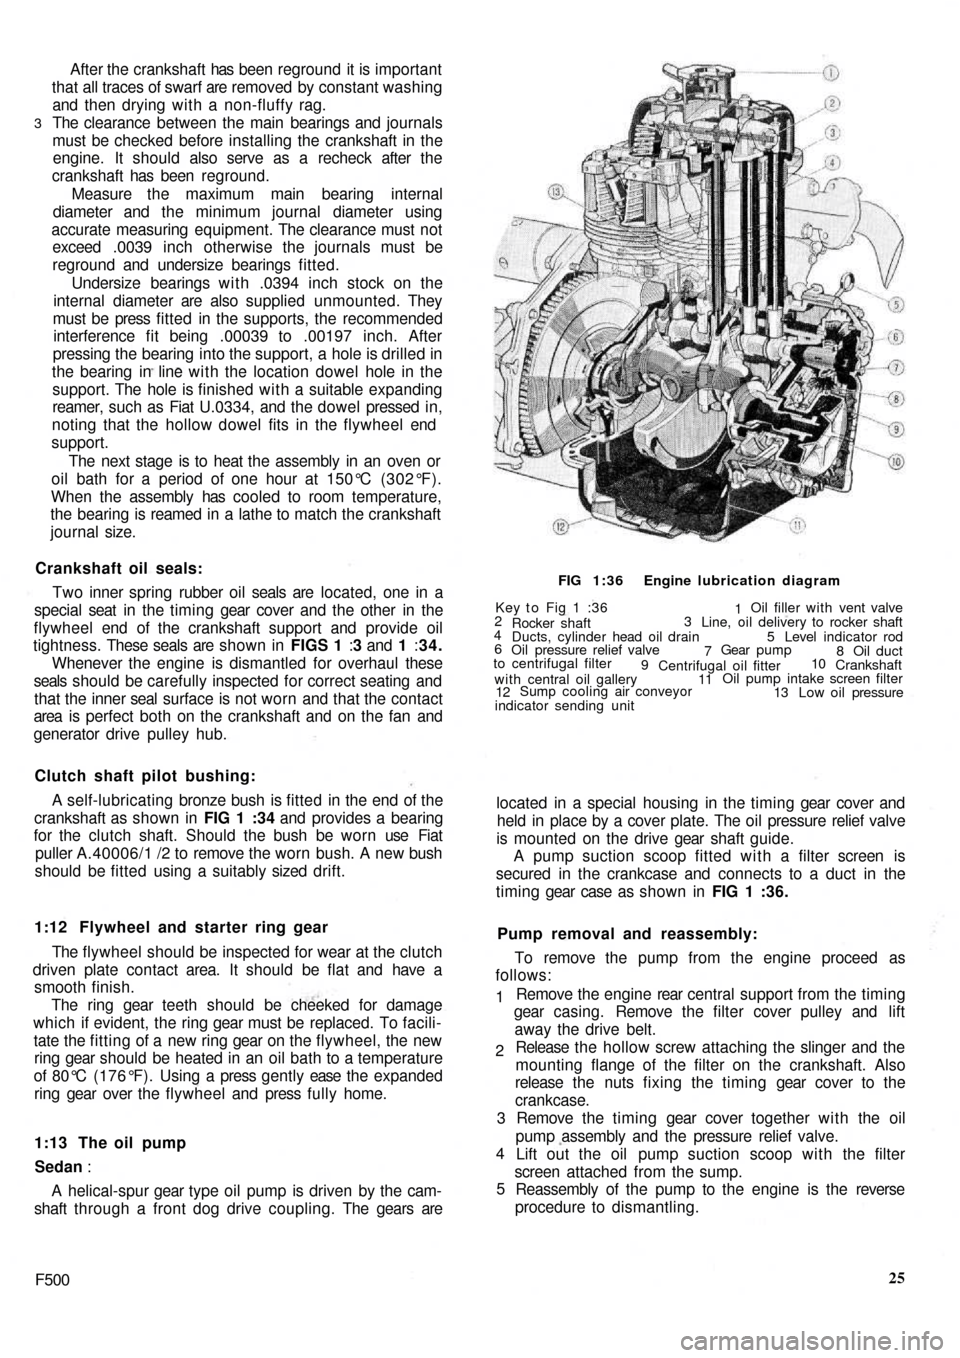 FIAT 500 1971 1.G Workshop Manual